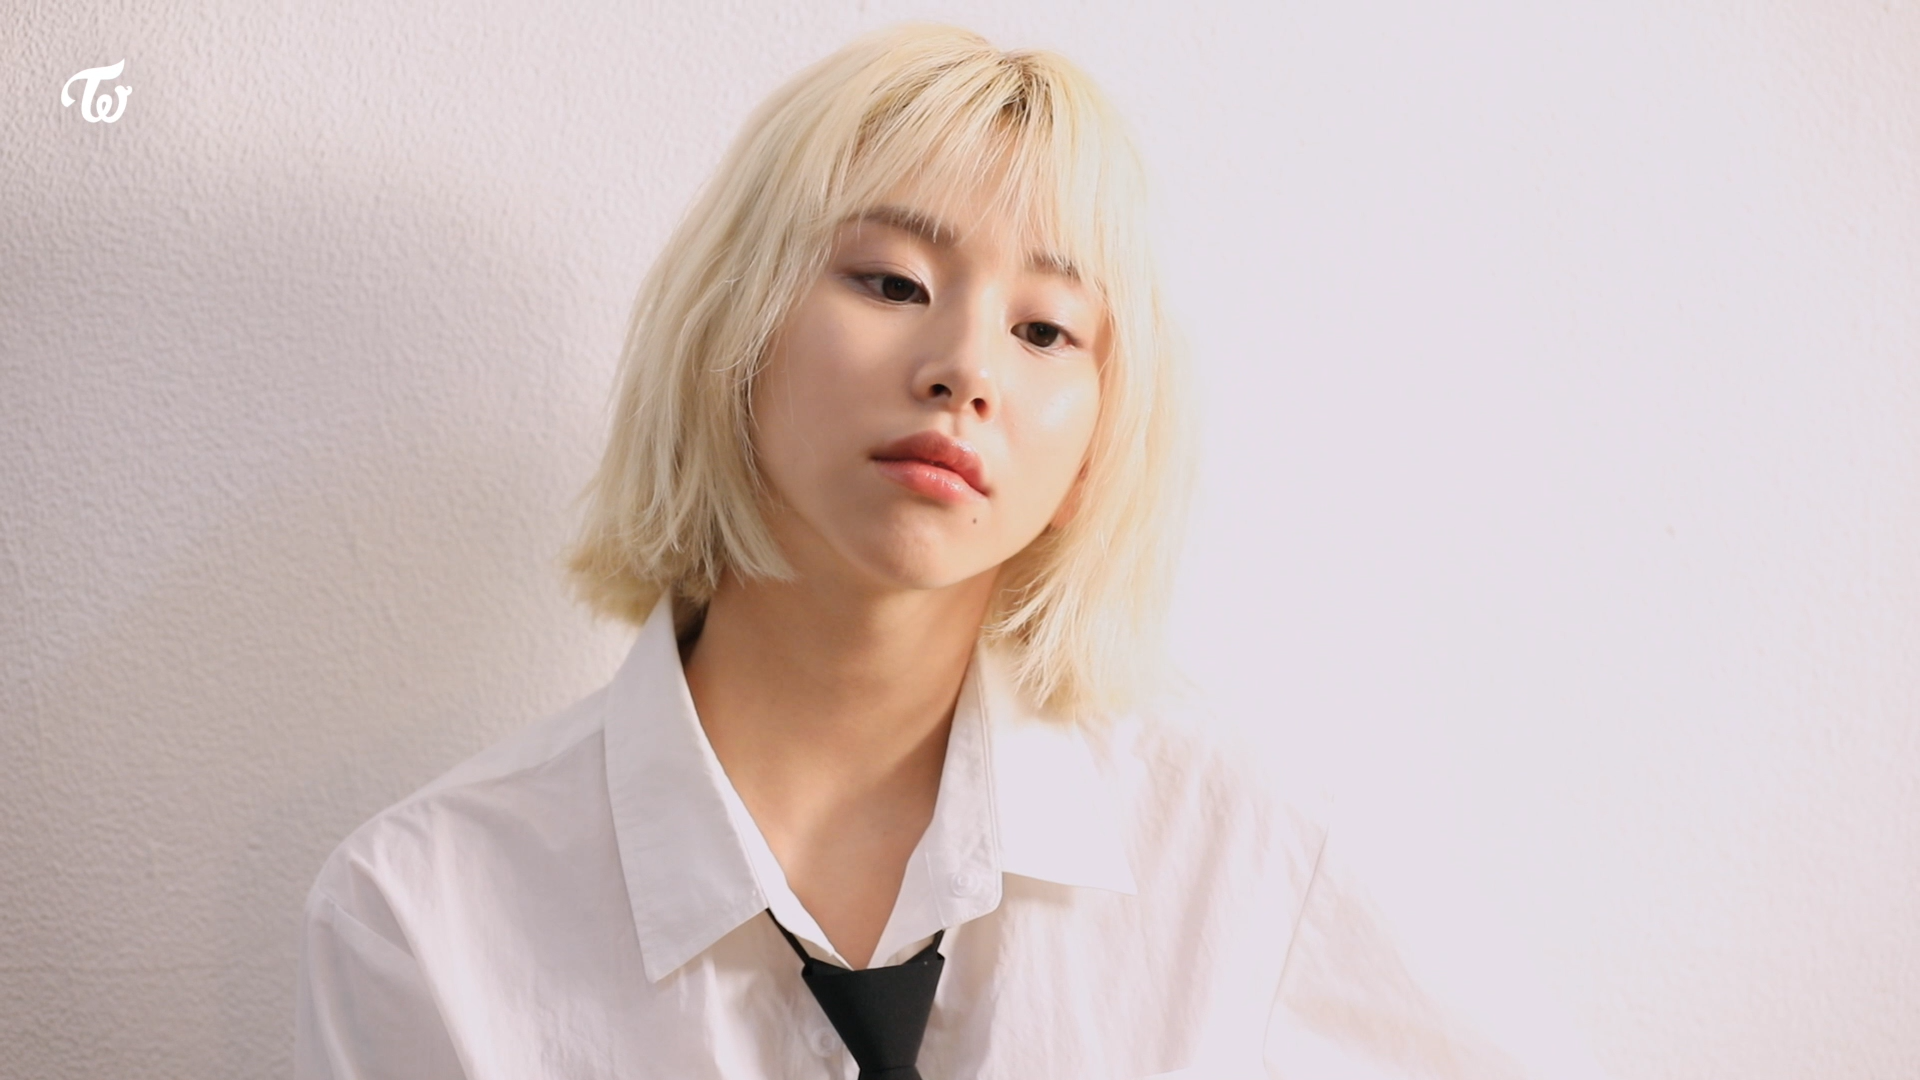 TWICE CHAEYOUNG x OhBoy! Behind the Scenes